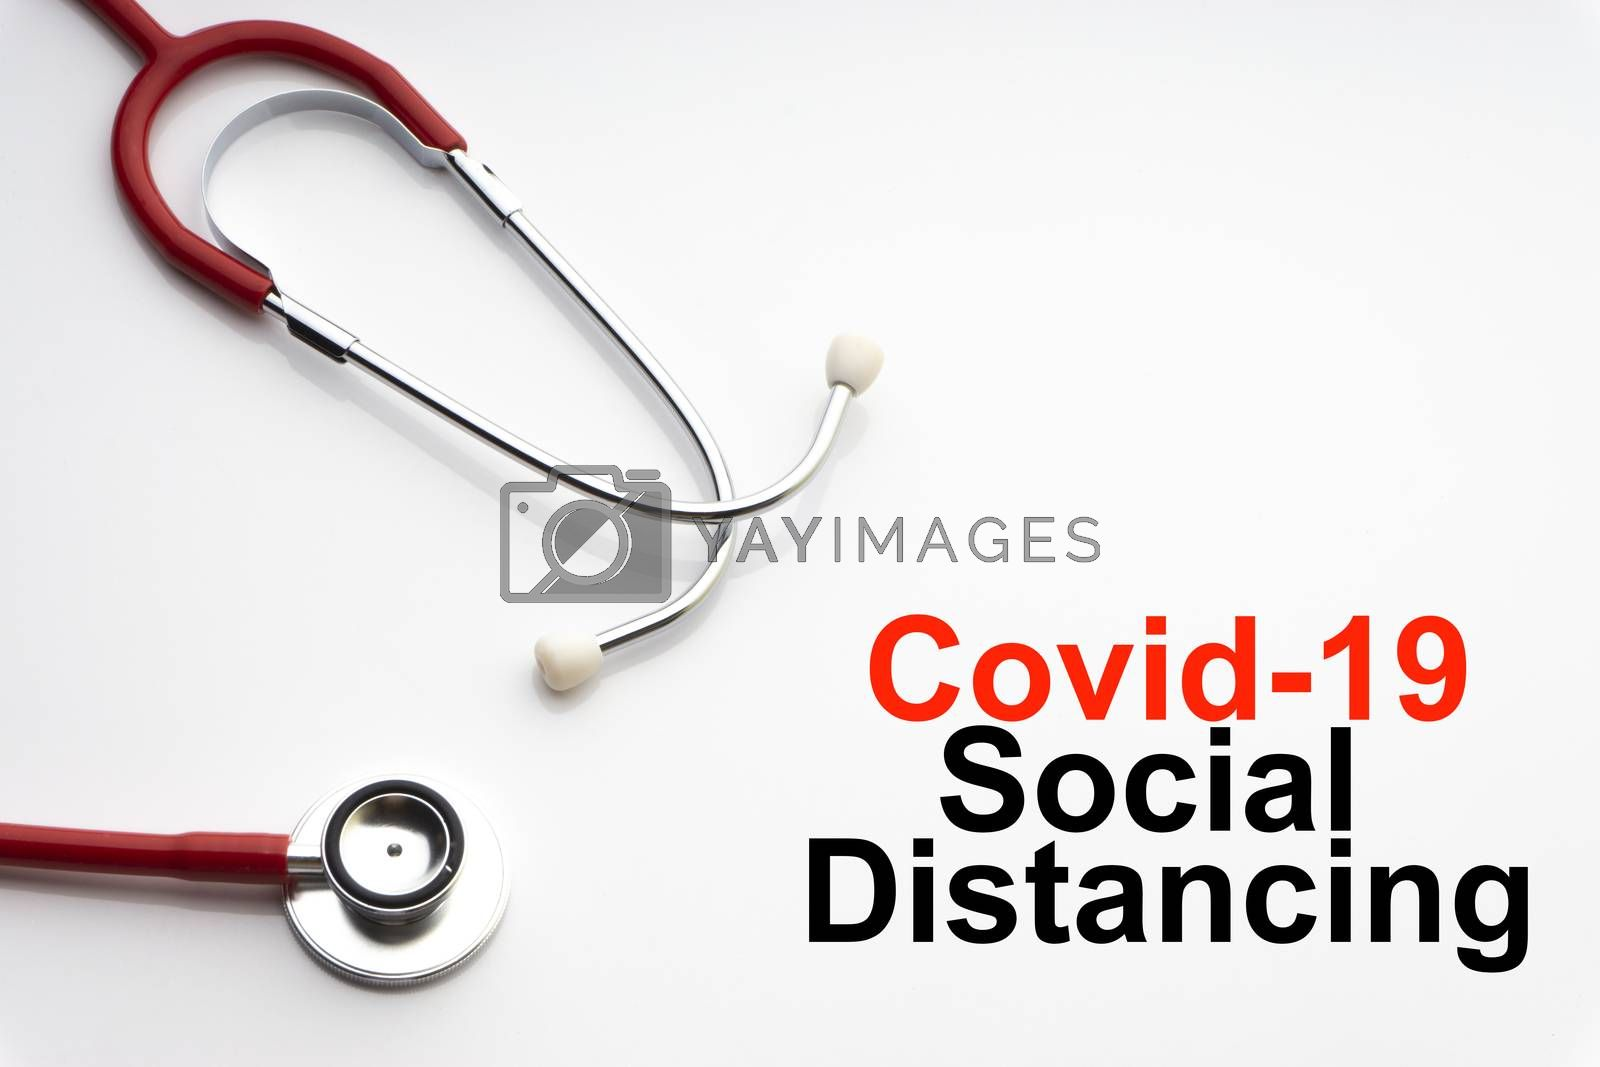 COVID-19 SOCIAL DISTANCING text with stethoscope on white background. Covid or Coronavirus Concept